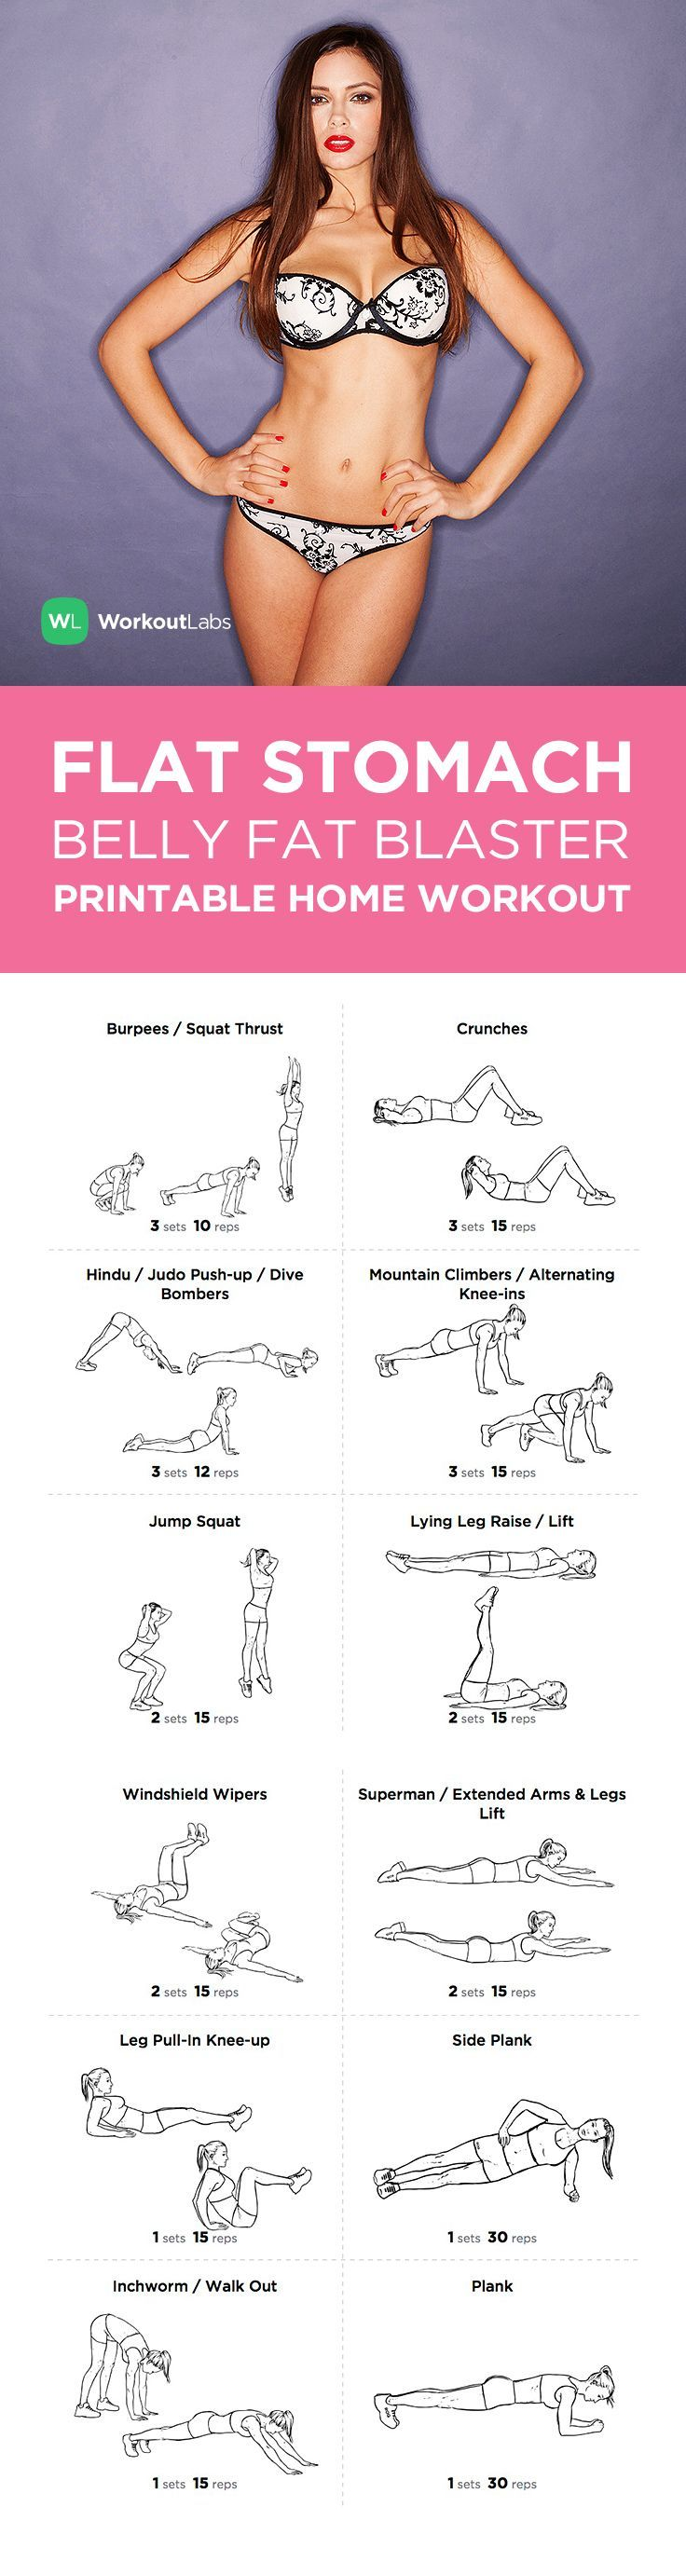 Flat Stomach Belly Fat Blaster at Home Workout